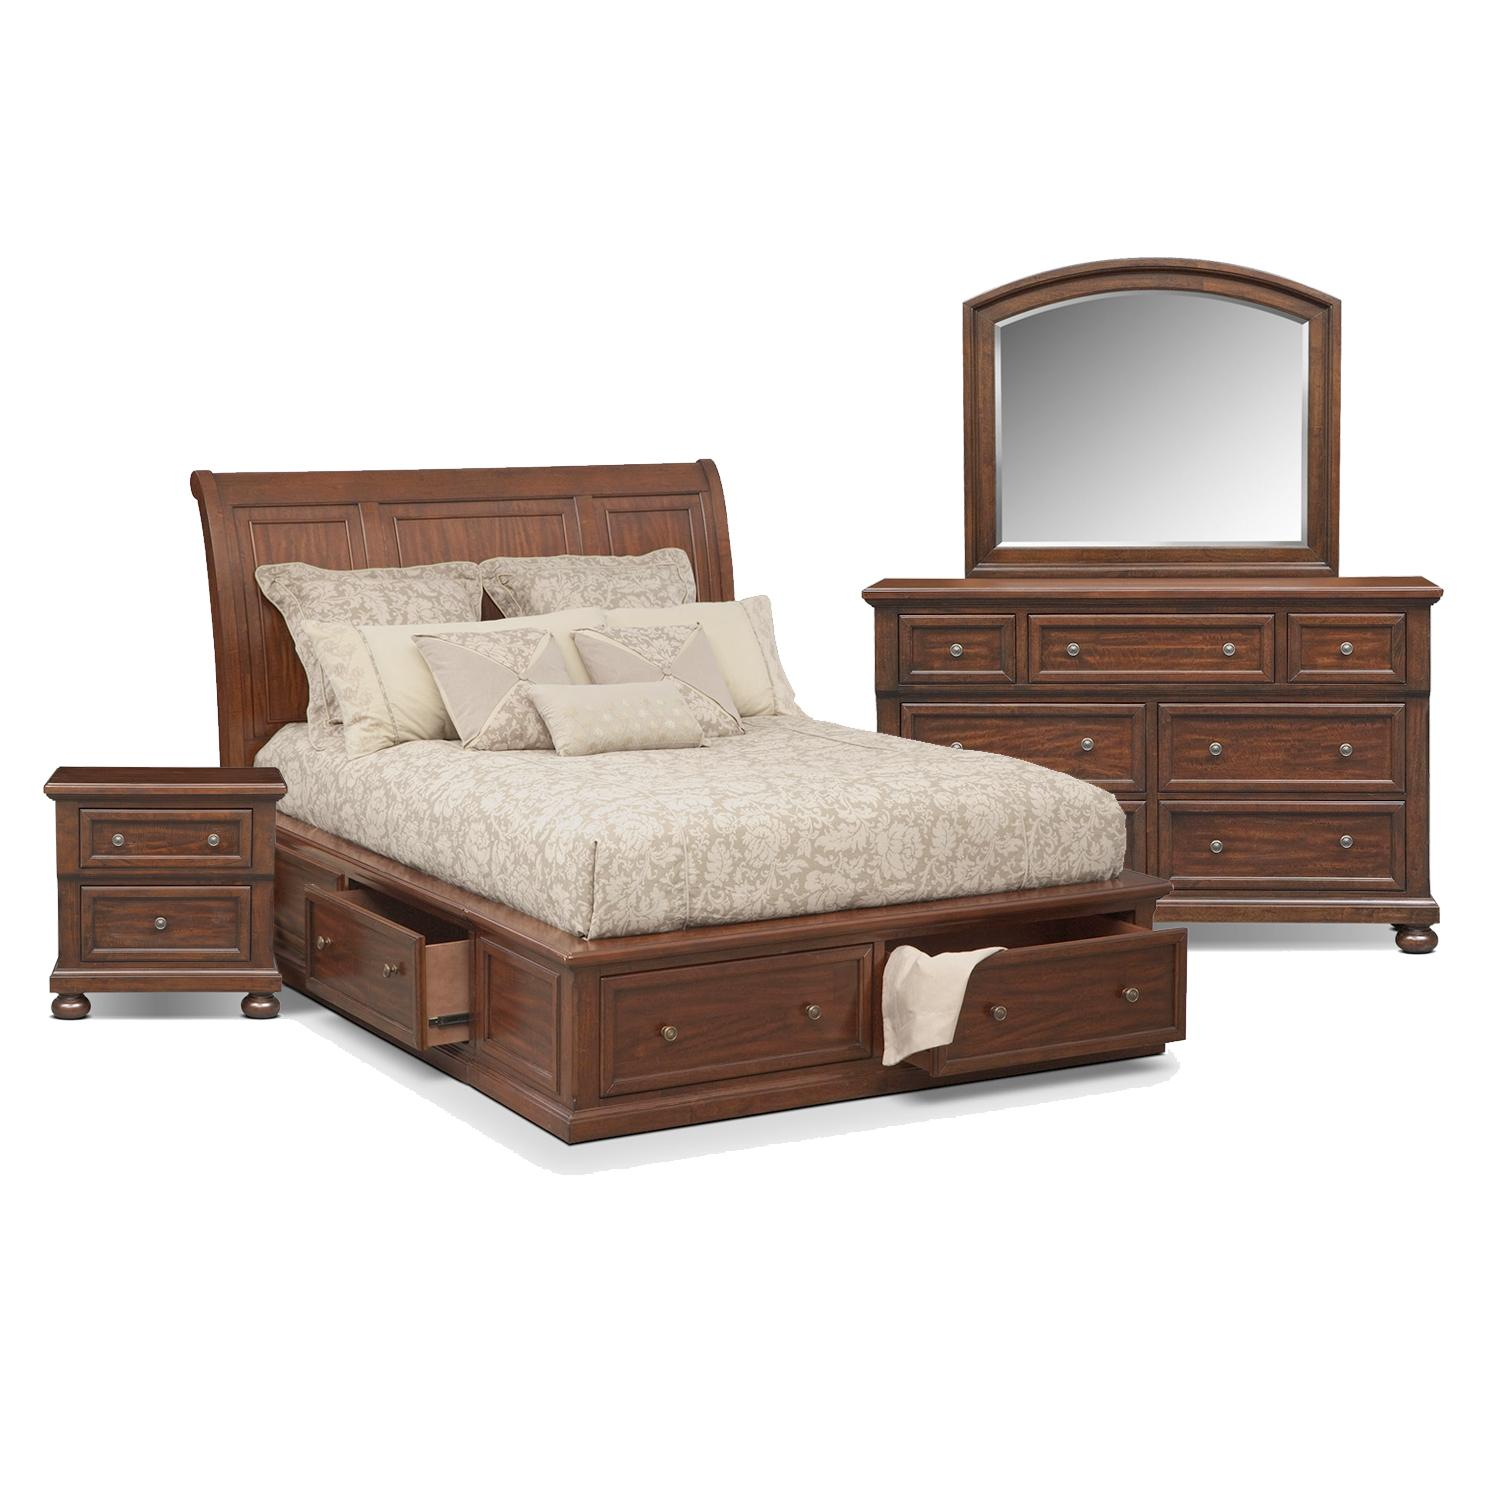 Furniture Images Impressive Bedroom Furniture  Value City Furniture Decorating Design